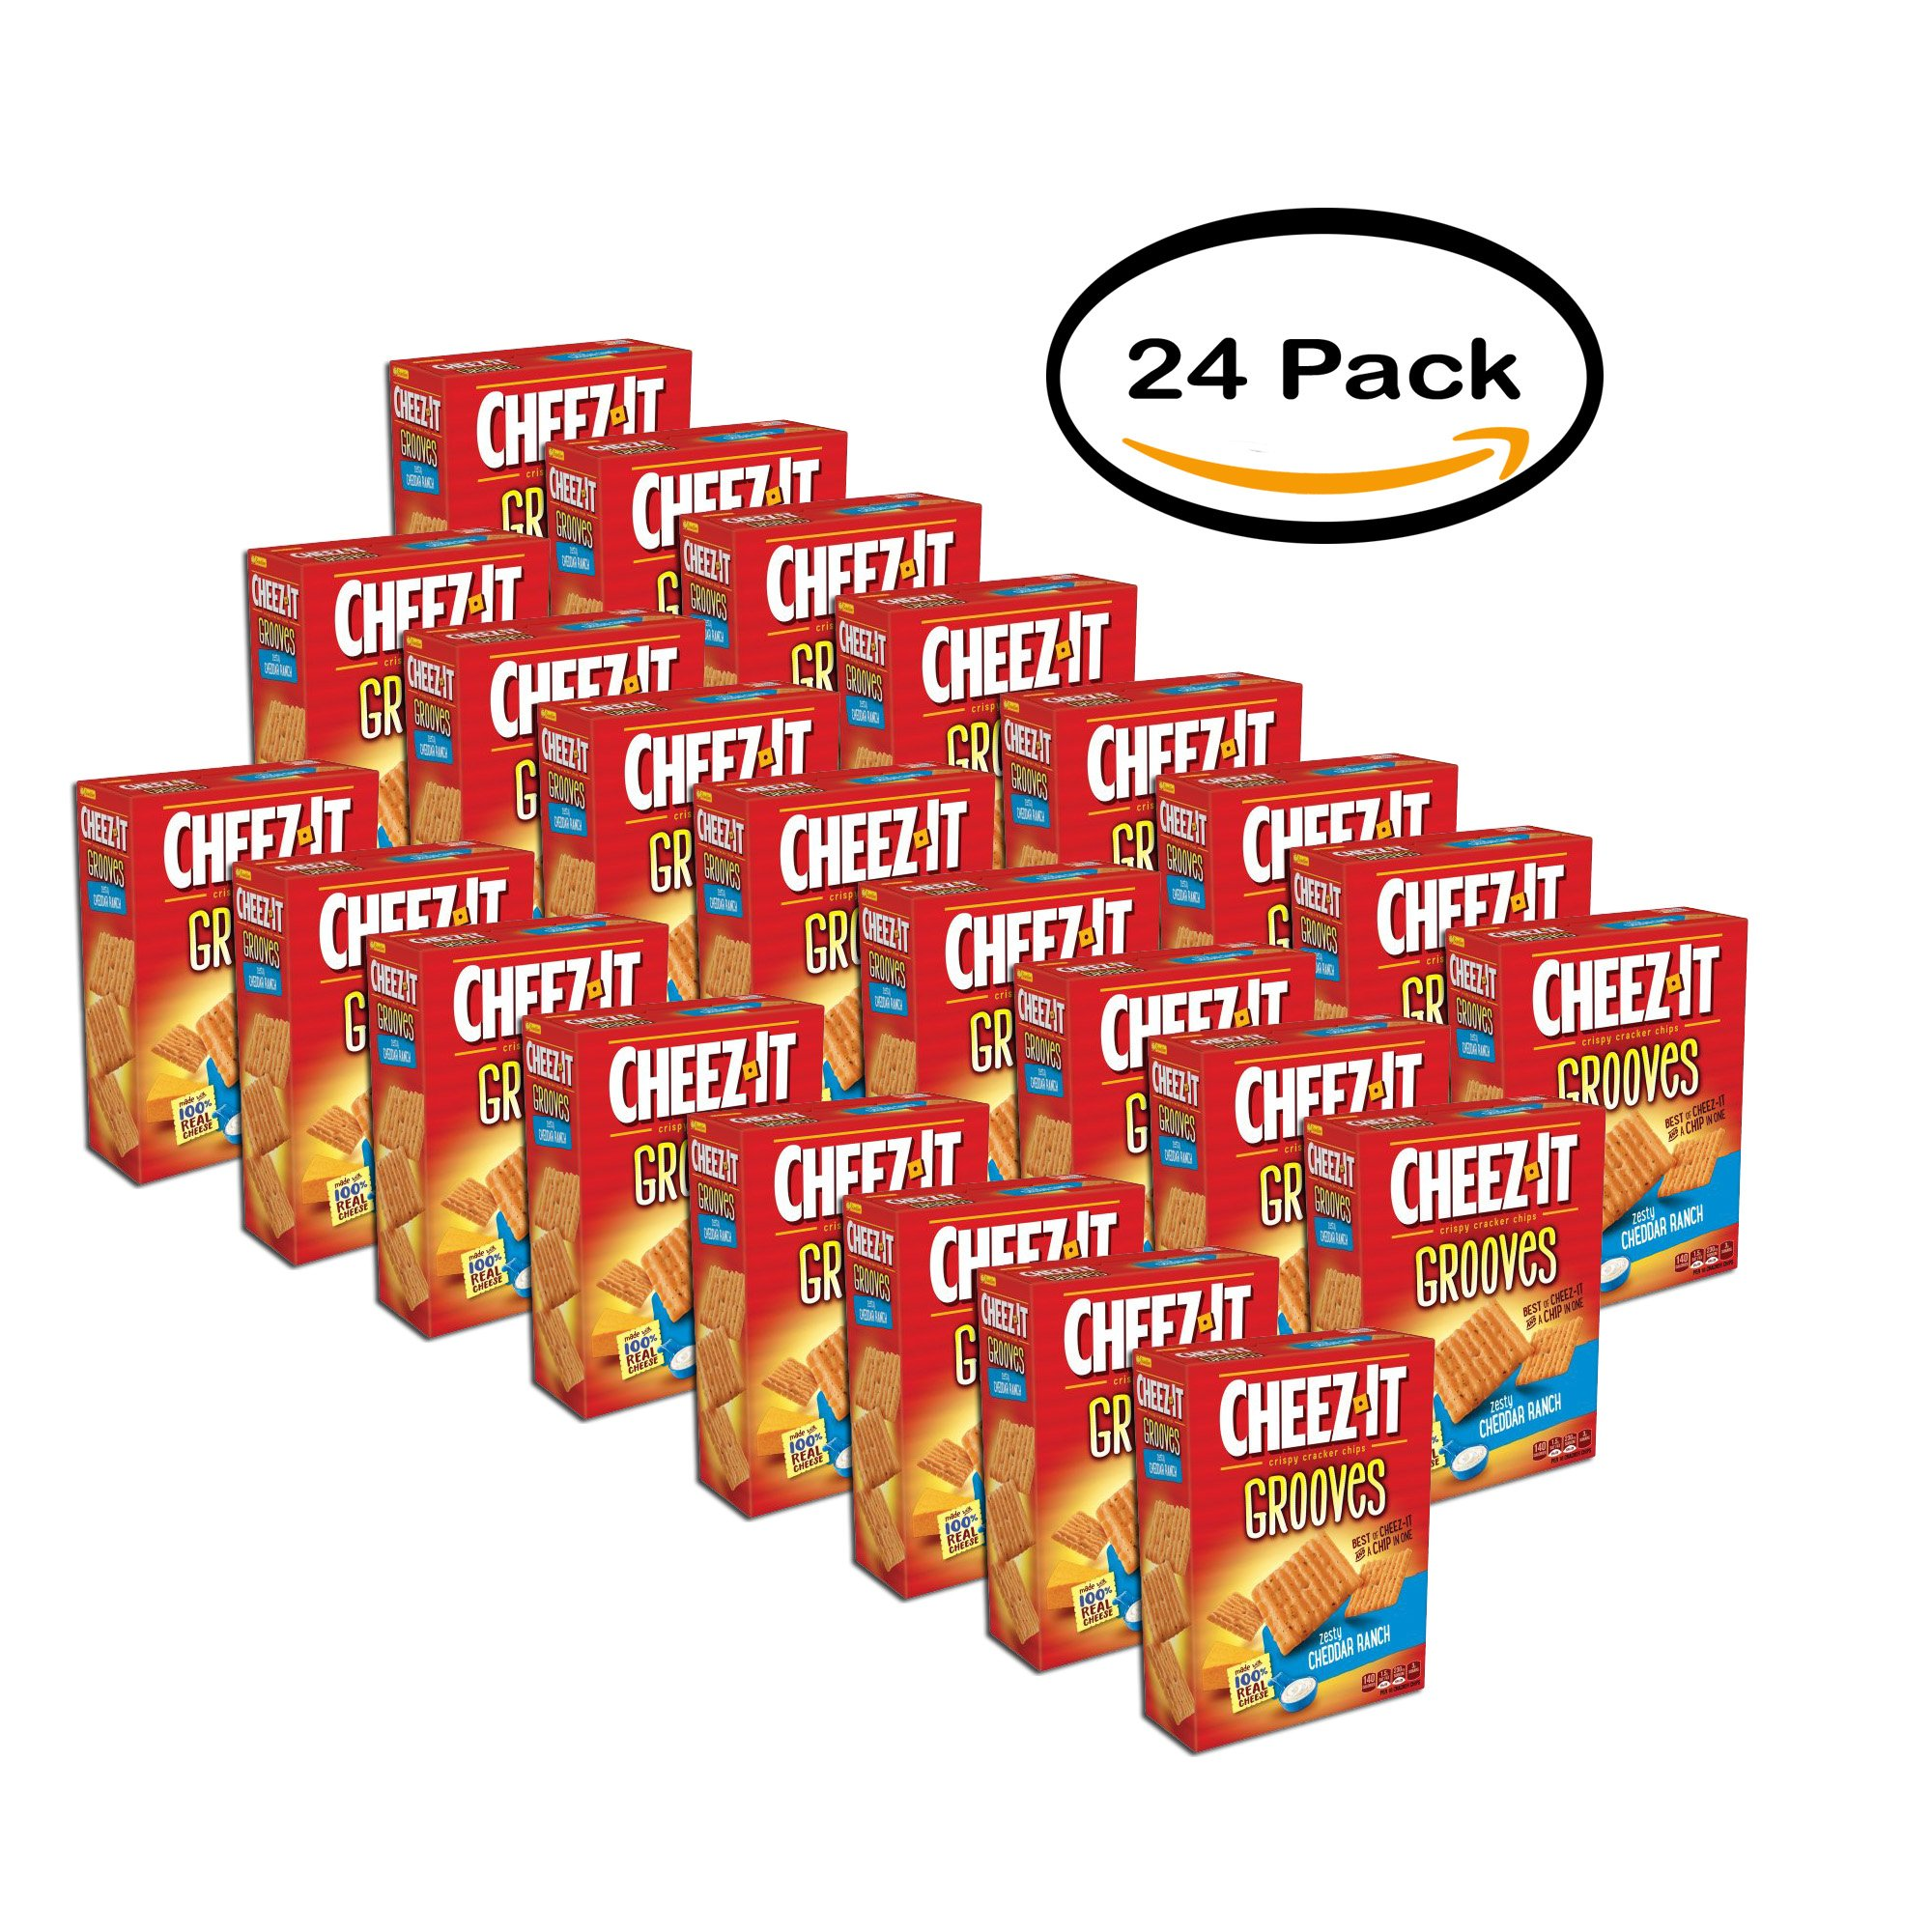 PACK OF 24 - Cheez-It Grooves Zesty Cheddar Ranch Crispy Cracker Chips 9 oz. Box